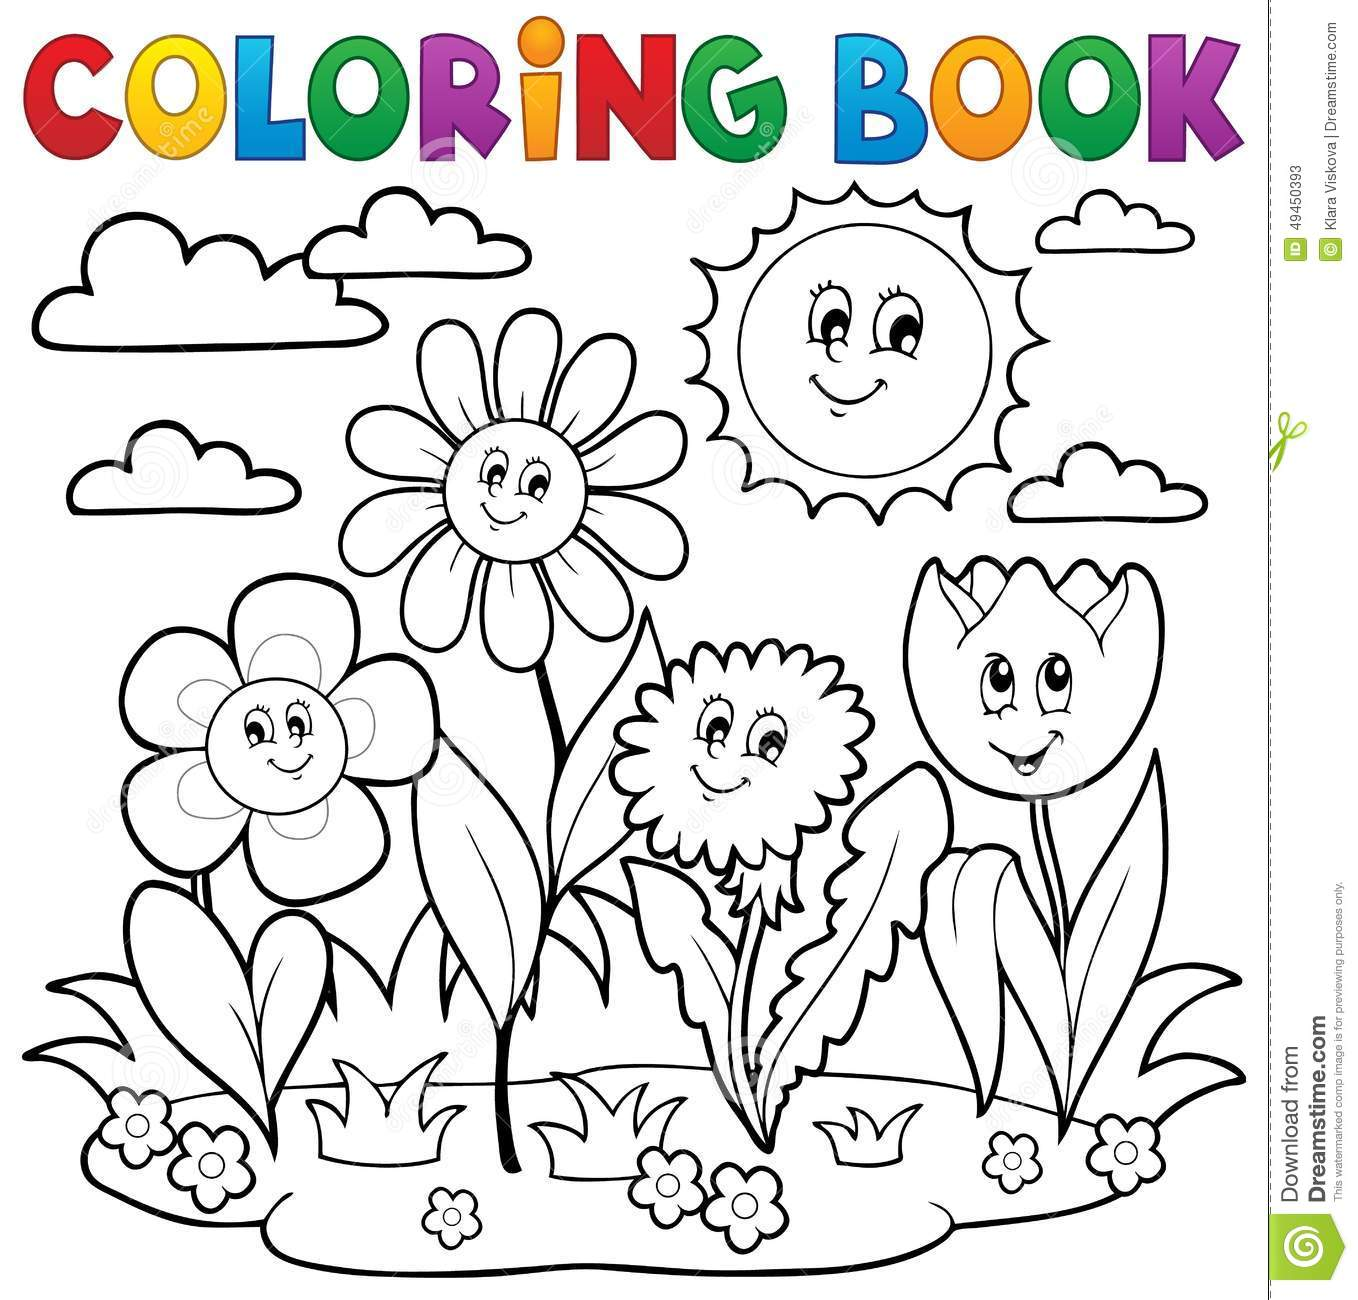 Coloring Book With Flower Theme 7 Stock Vector - Illustration of ...